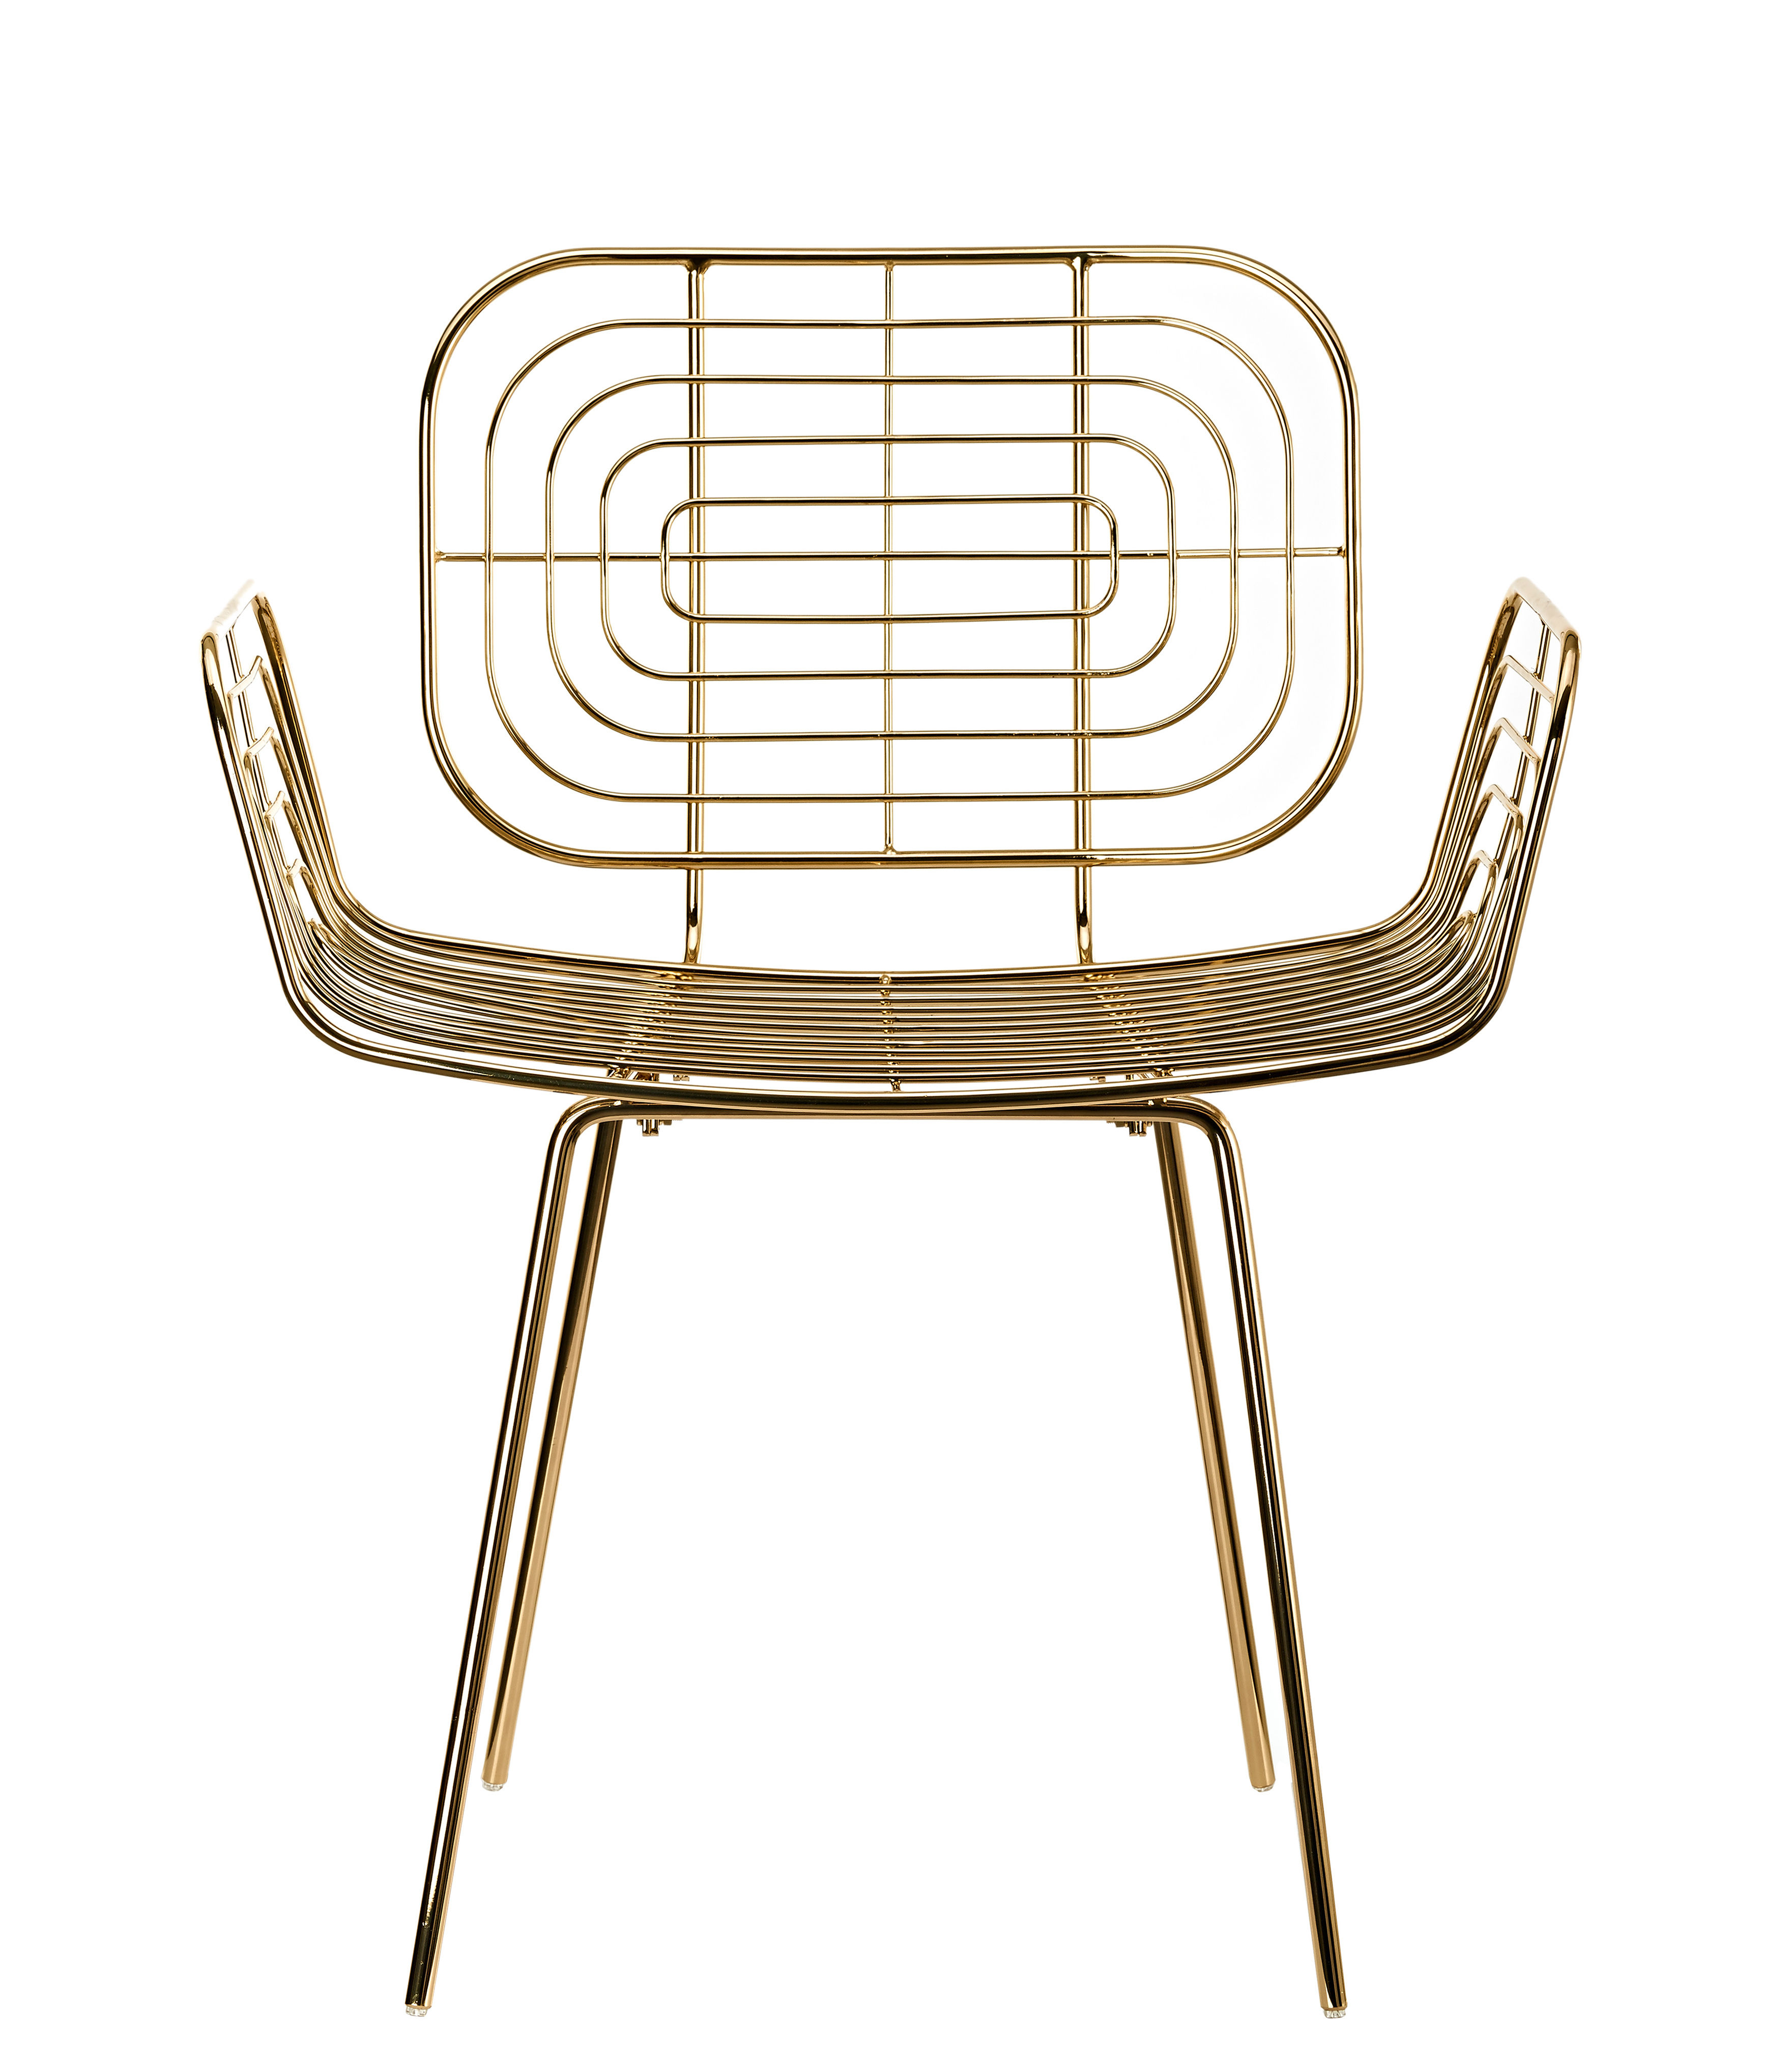 Furniture - Chairs - Boston Armchair - / Metal by Pols Potten - Gold - Lacquered metal